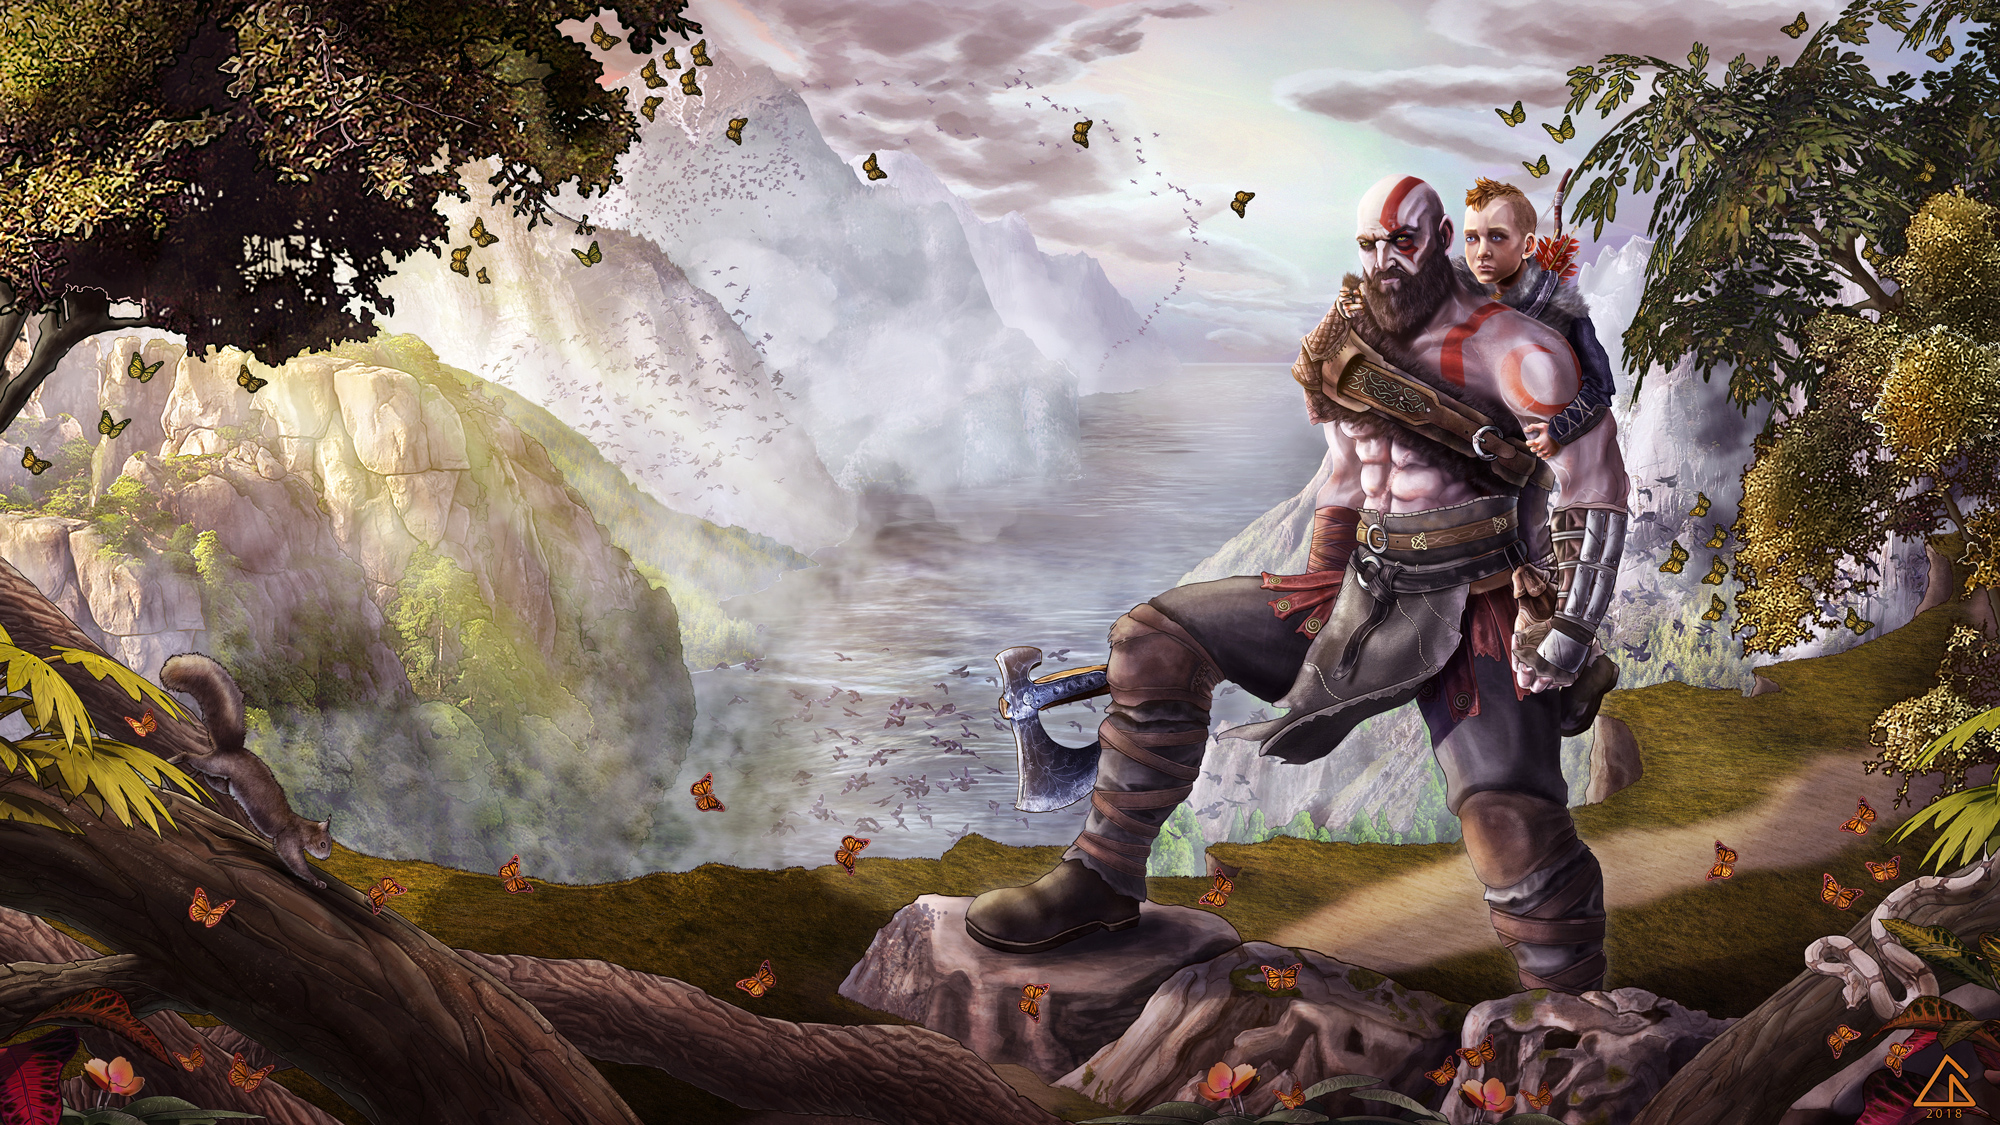 God Of War Wallpaper Posted By Ethan Johnson